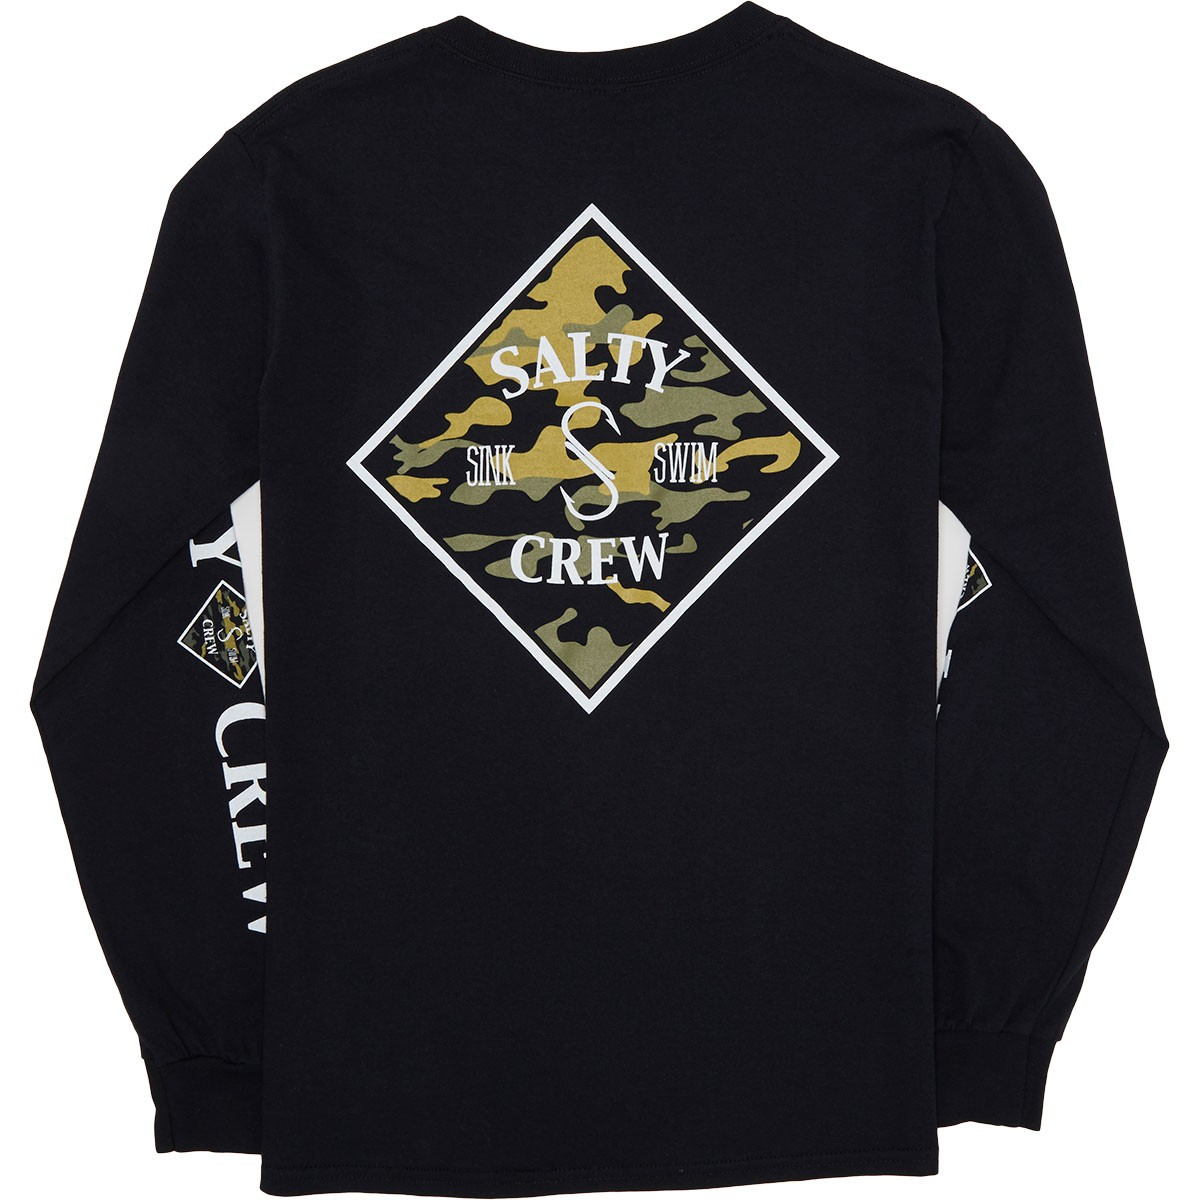 0faa6ba9cf Salty Crew Tippet Camo Long Sleeve T-Shirt - Black